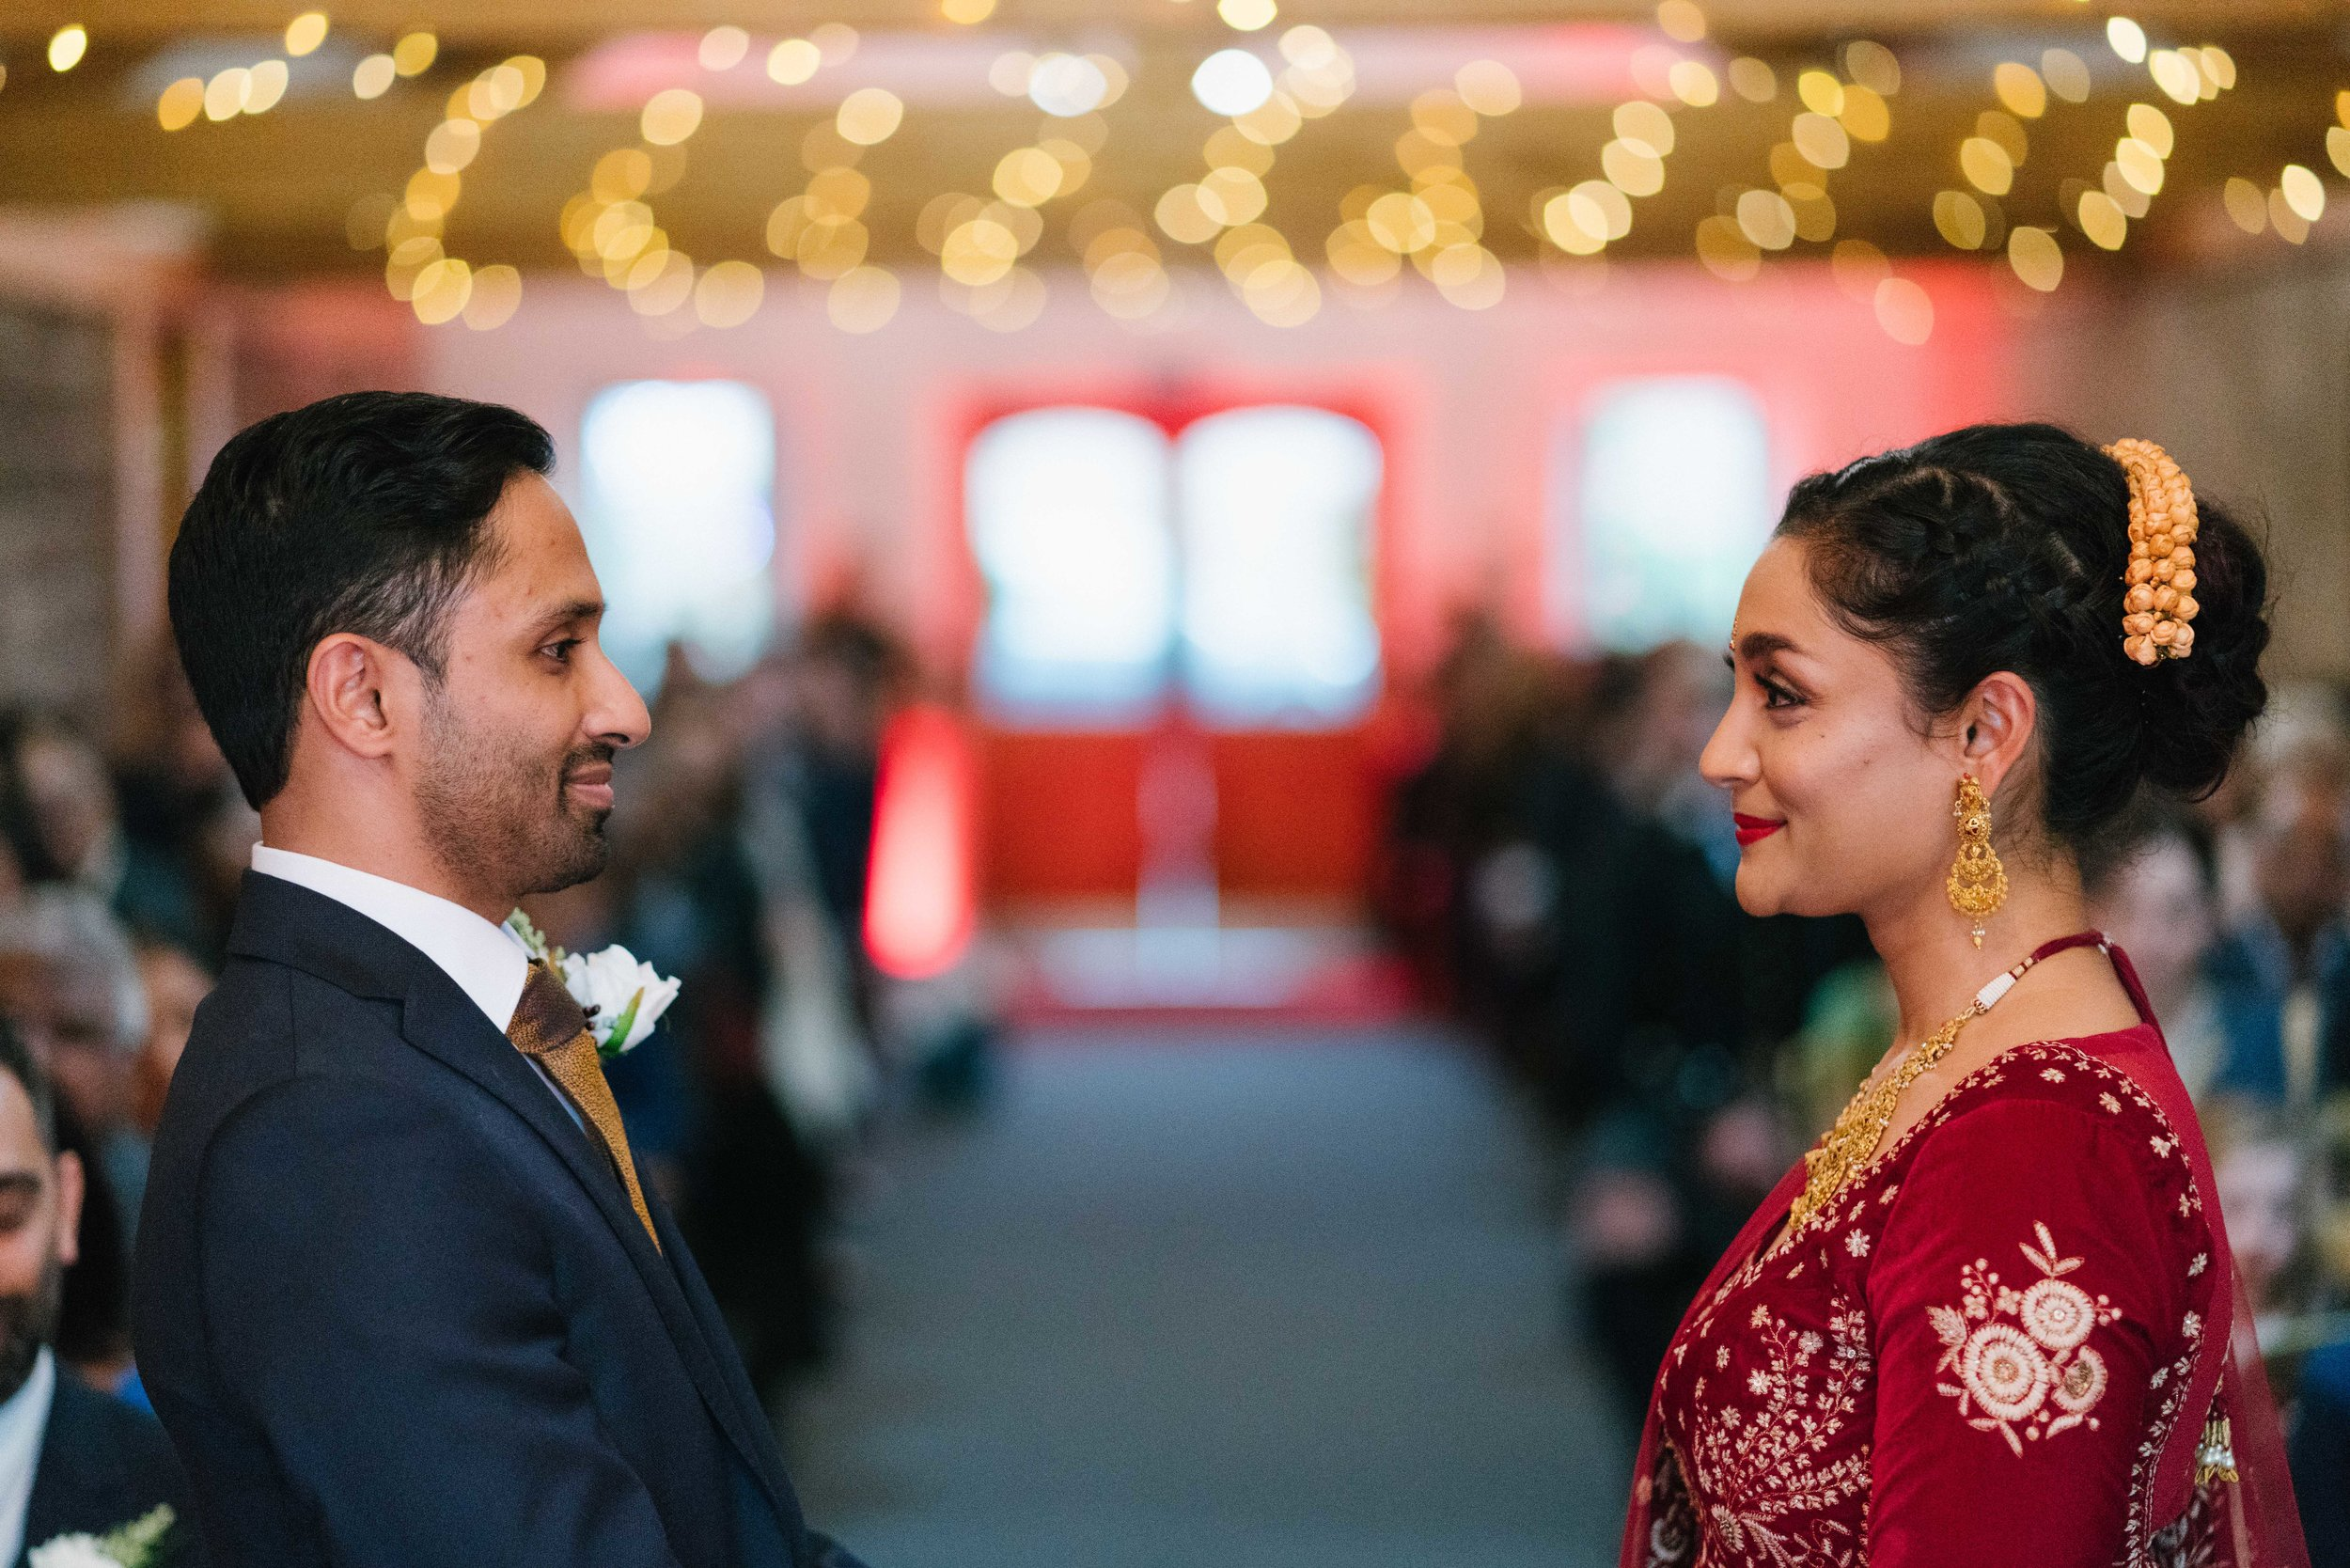 christmas-winter-wedding-photography-videography-heaton-house-239